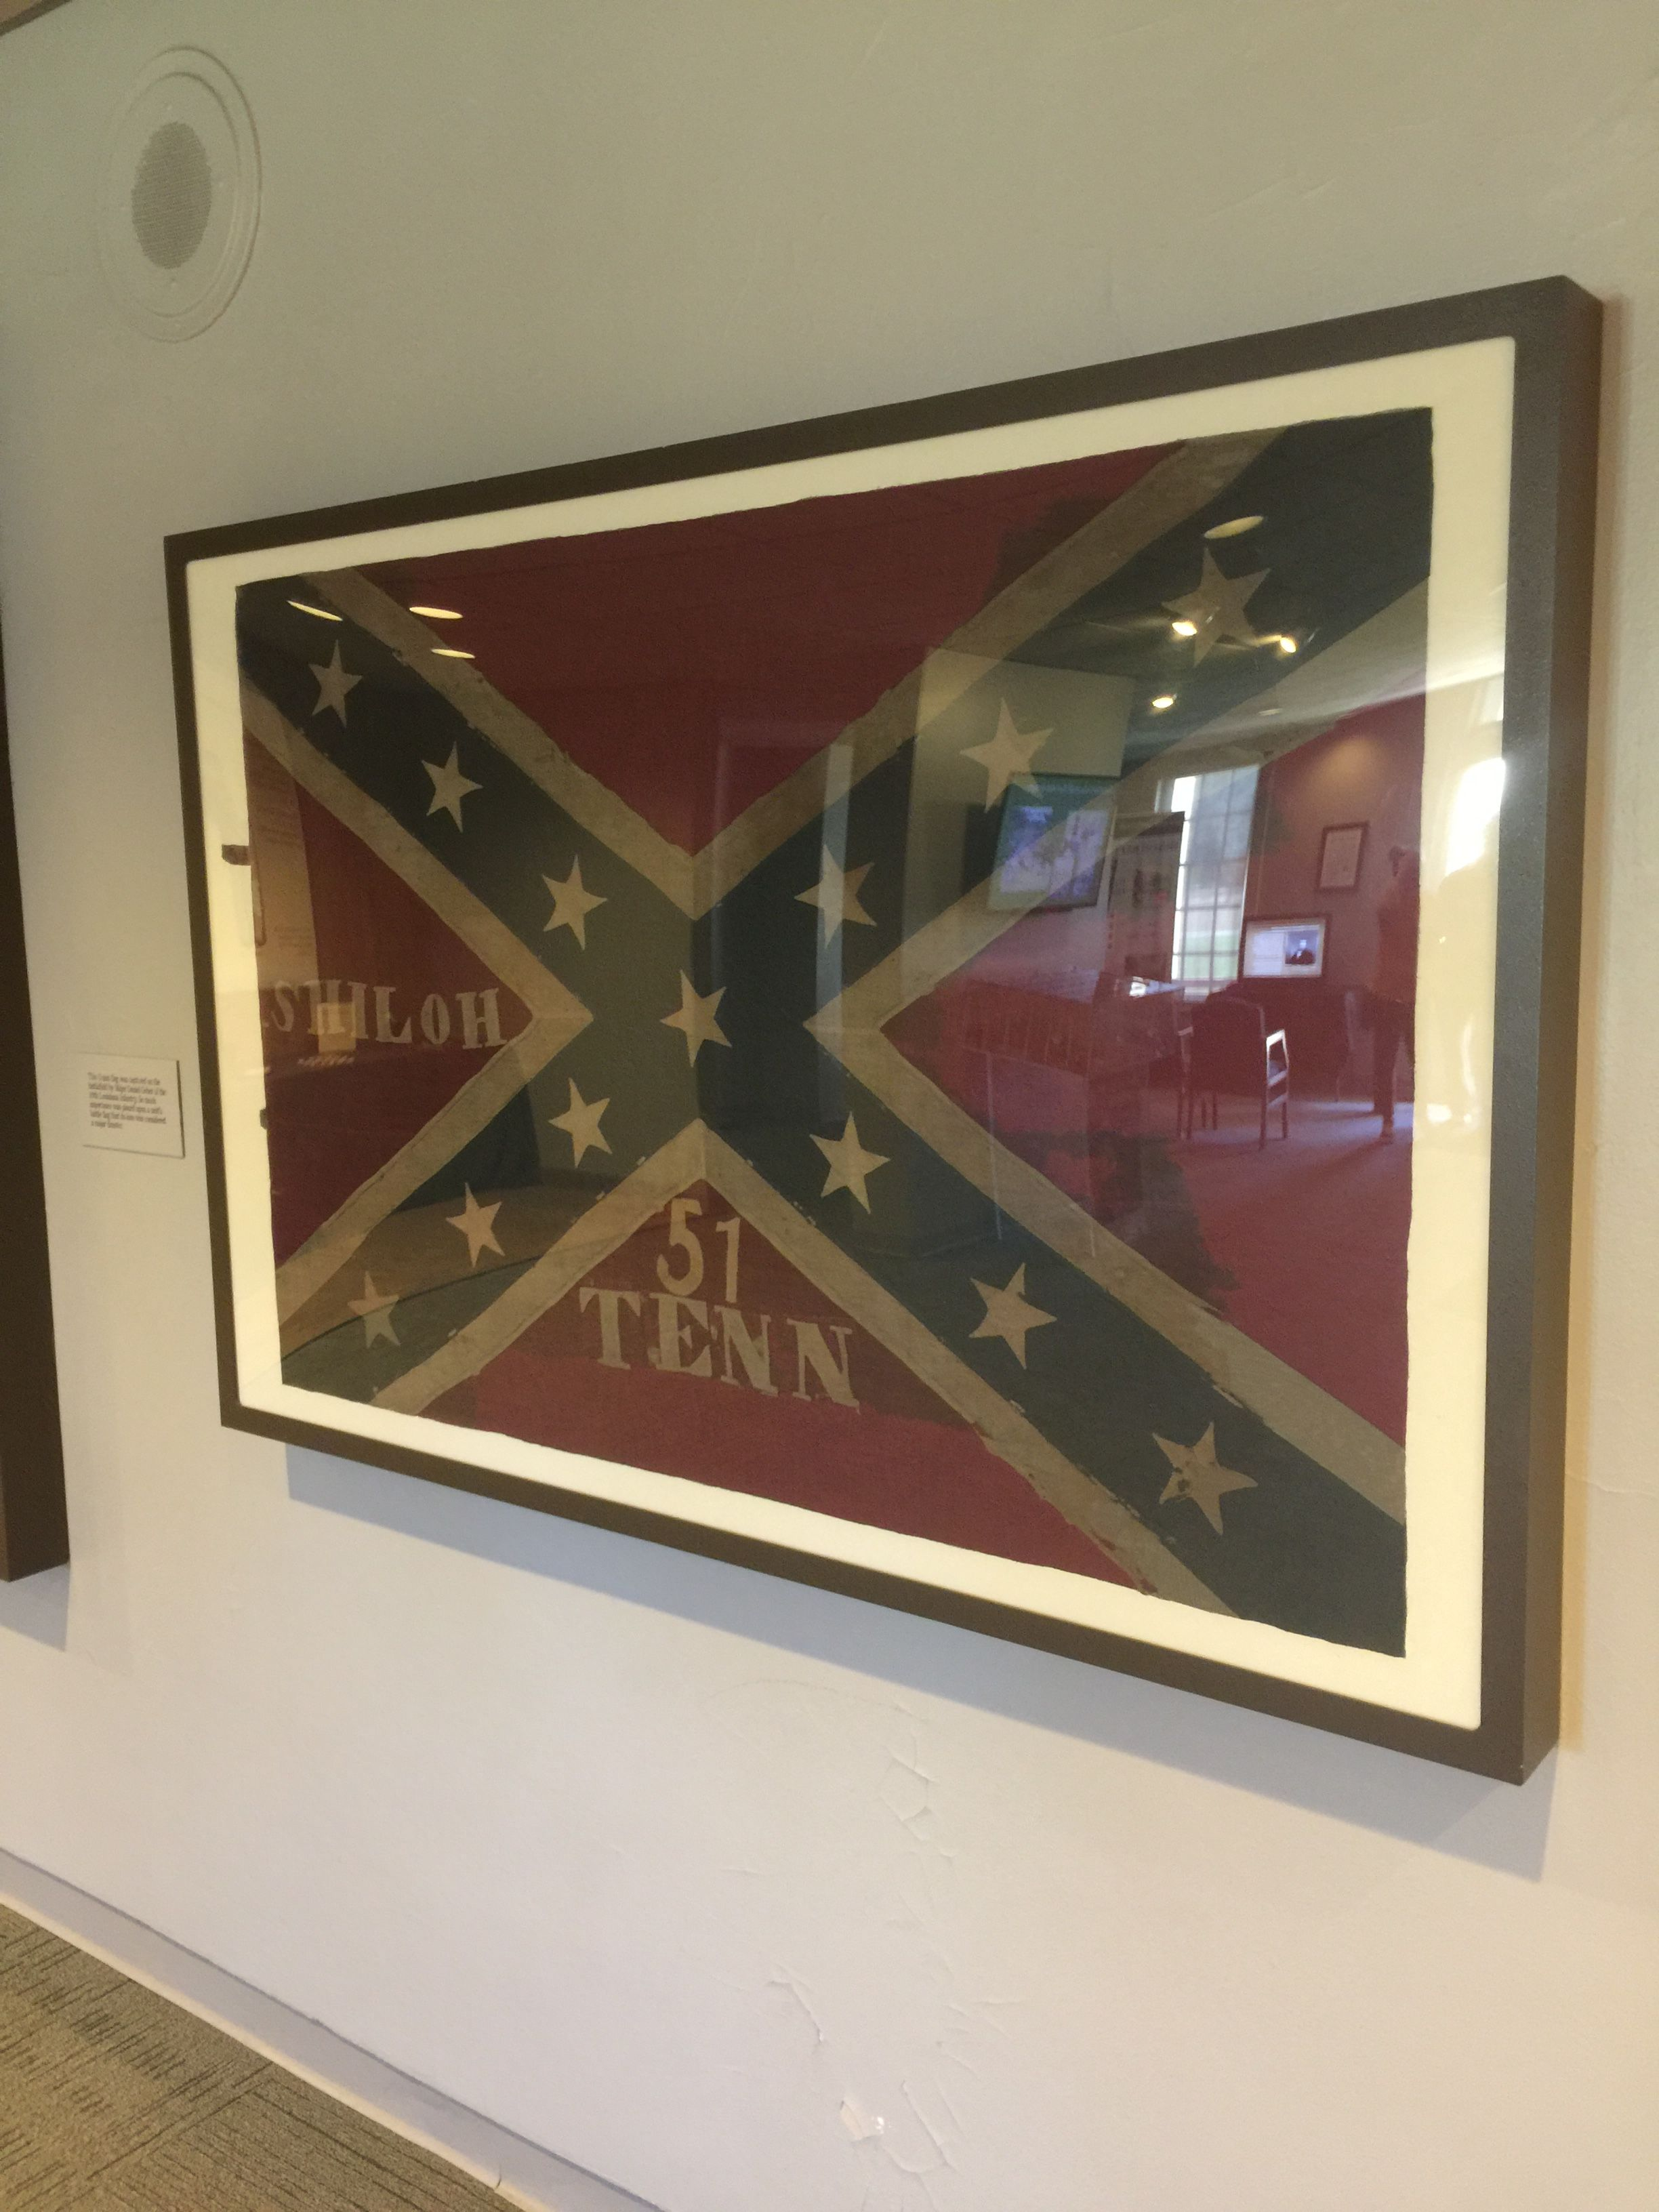 Regimental Battle Flag Of The 51st Tennessee Infantry